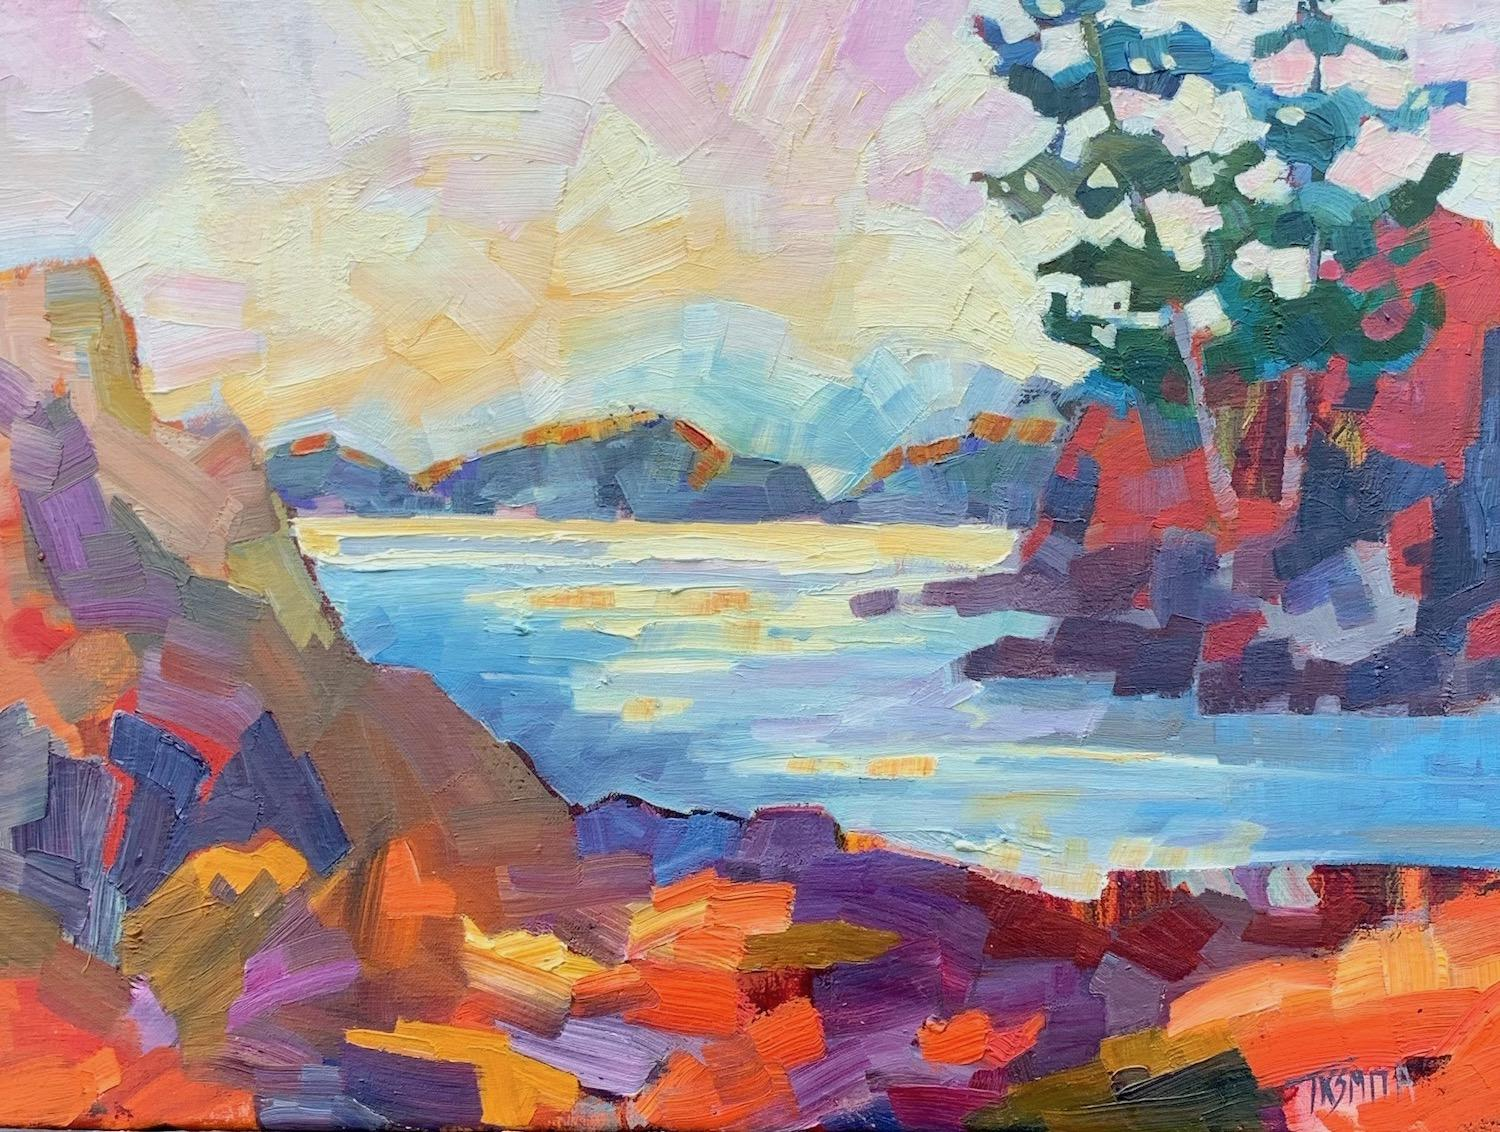 Cove, Oil Painting